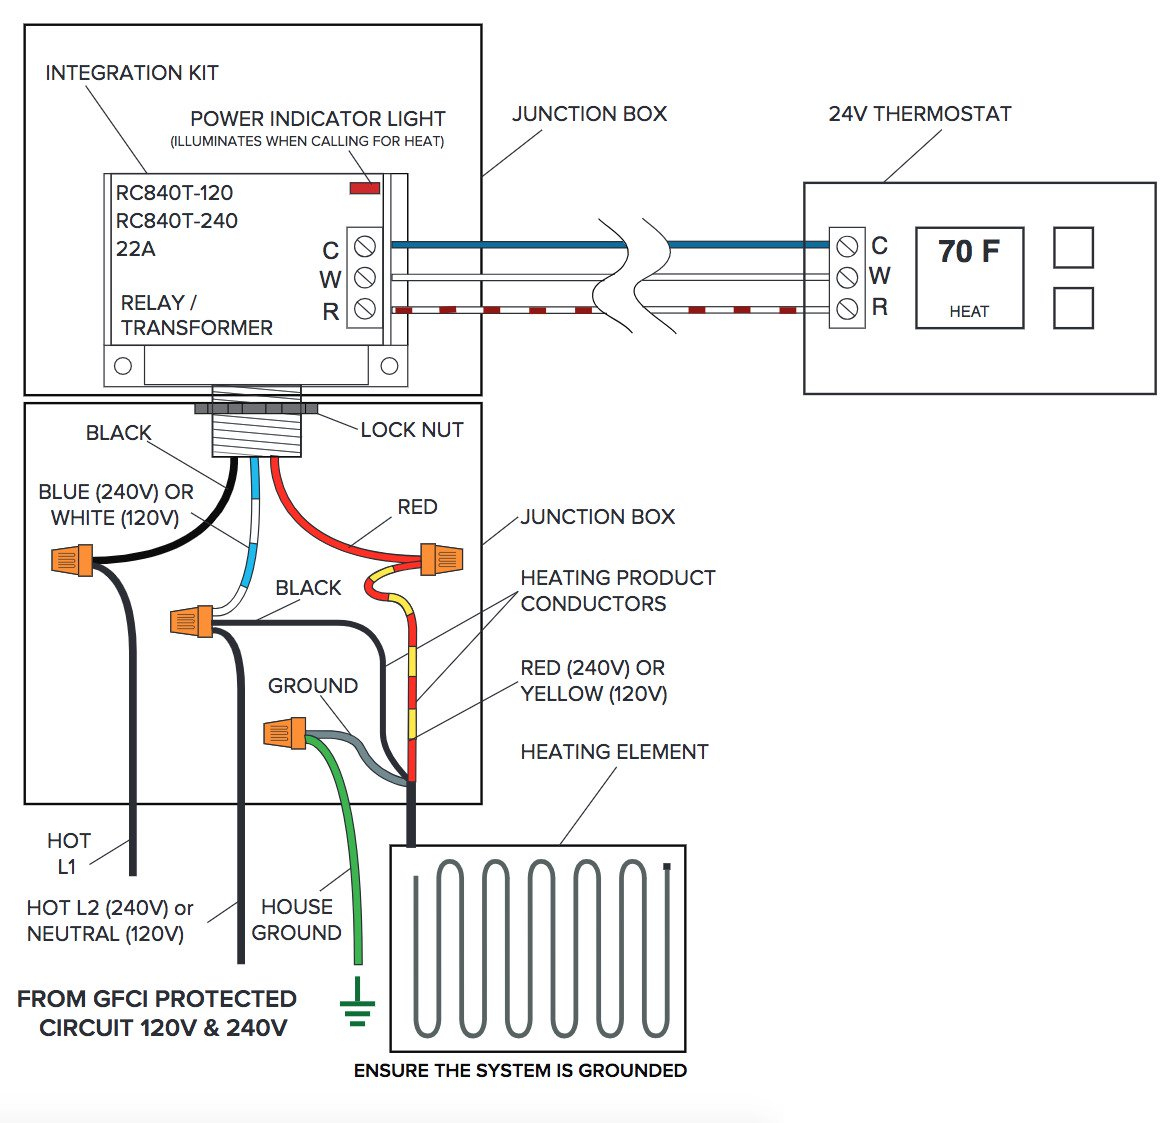 Transformer And Relay Wiring Diagram Thermostat | Wiring Library - Nest Thermostat Wiring Diagram With Aube Transformer And Relay For Swamp Cooler